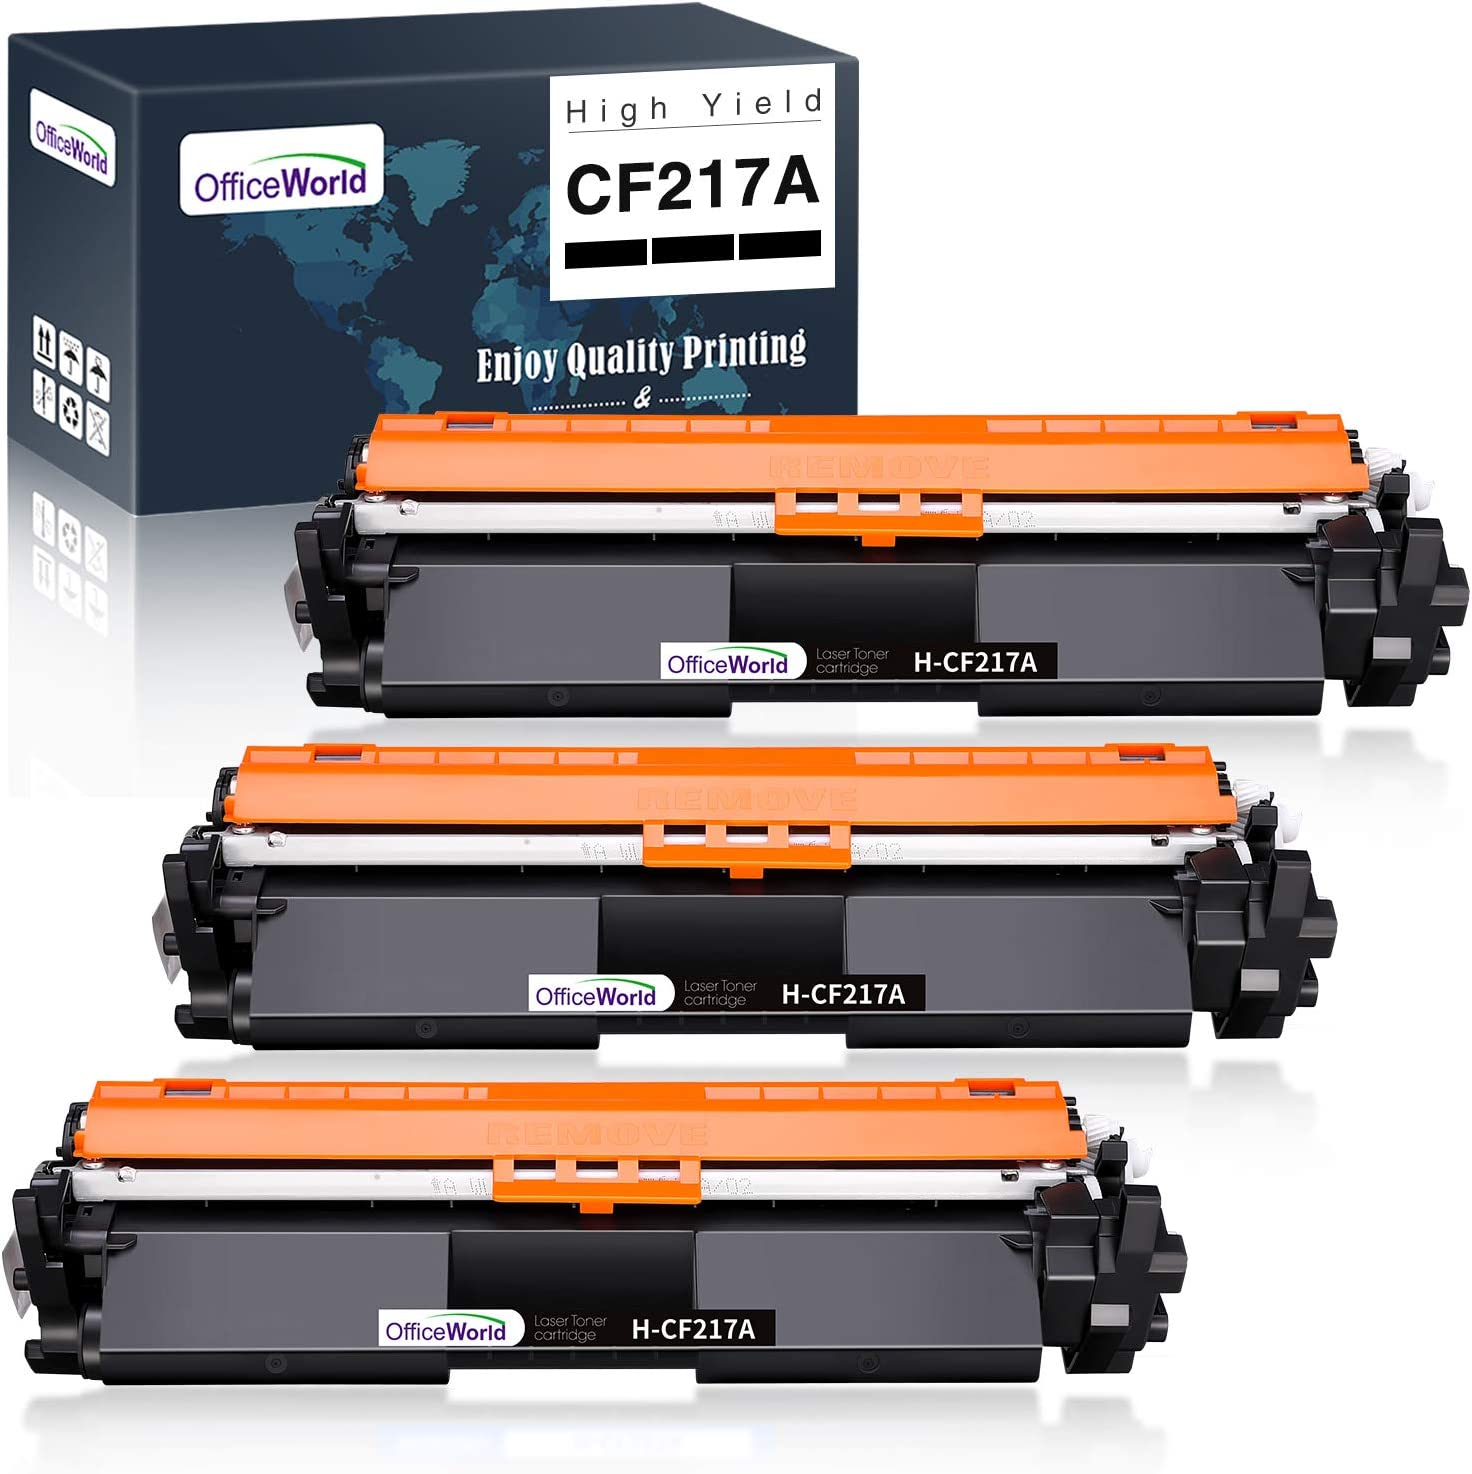 OfficeWorld 17A CF217A Compatible Toner Cartridge Replacement for HP 17A CF217A (Black, 3-Pack), for Laserjet Pro M102w M130nw M130fw M130fn M102a M130a Laserjet Pro MFP M130 M102 Series Printer